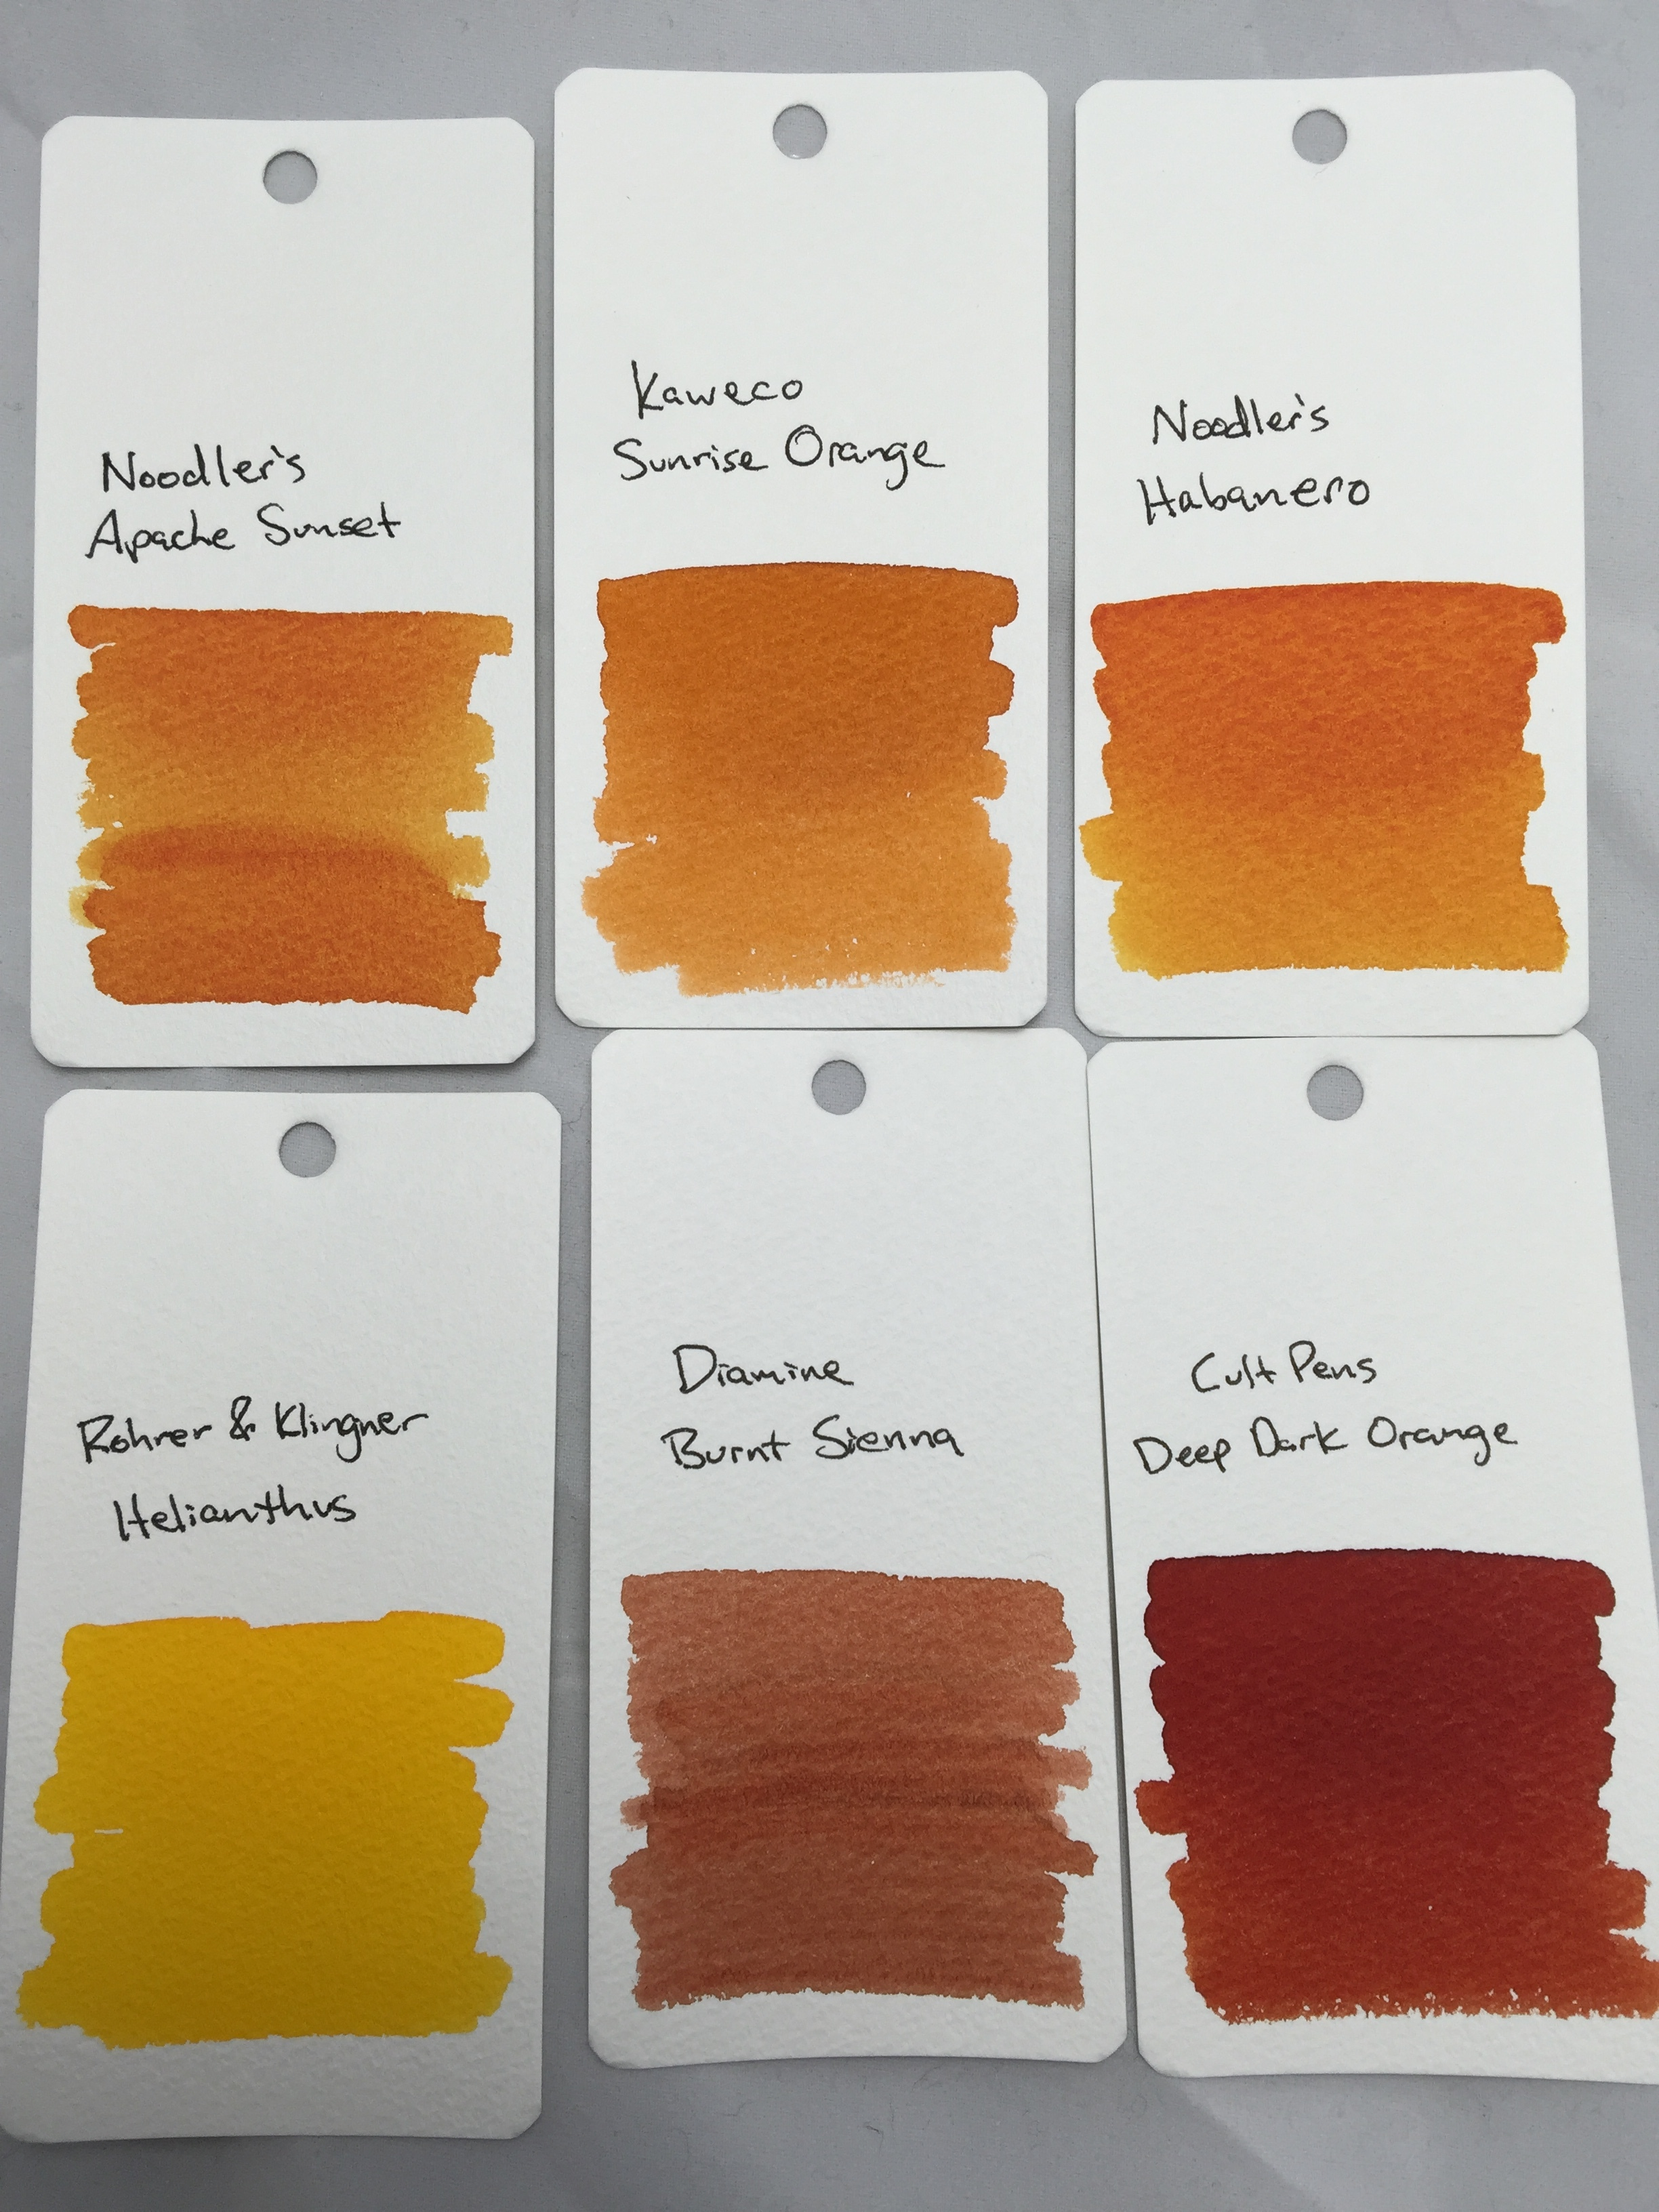 sunrise-orange-swab-comparisons